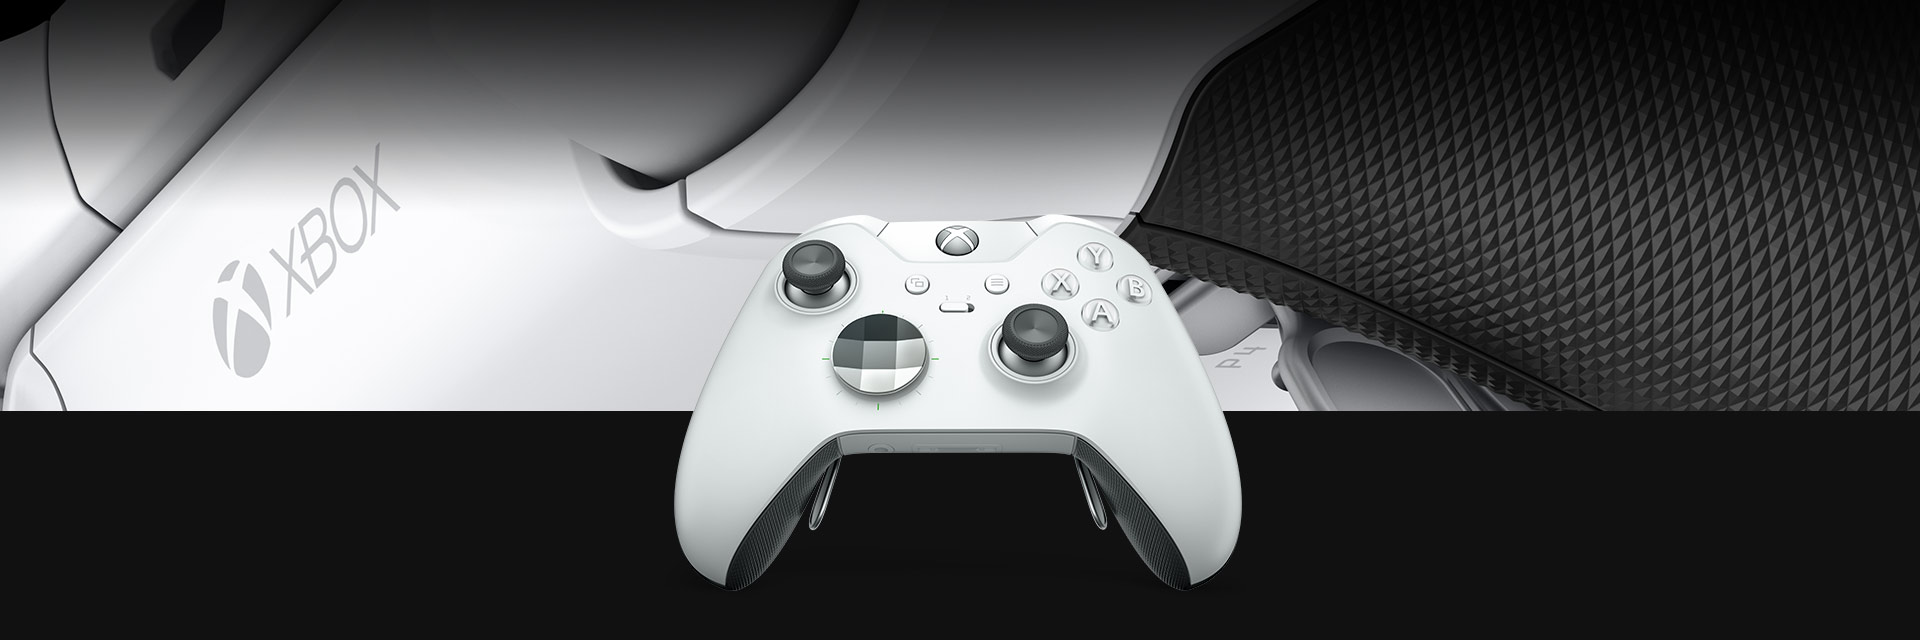 front view of the xbox one white elite wireless controller [ 1920 x 640 Pixel ]